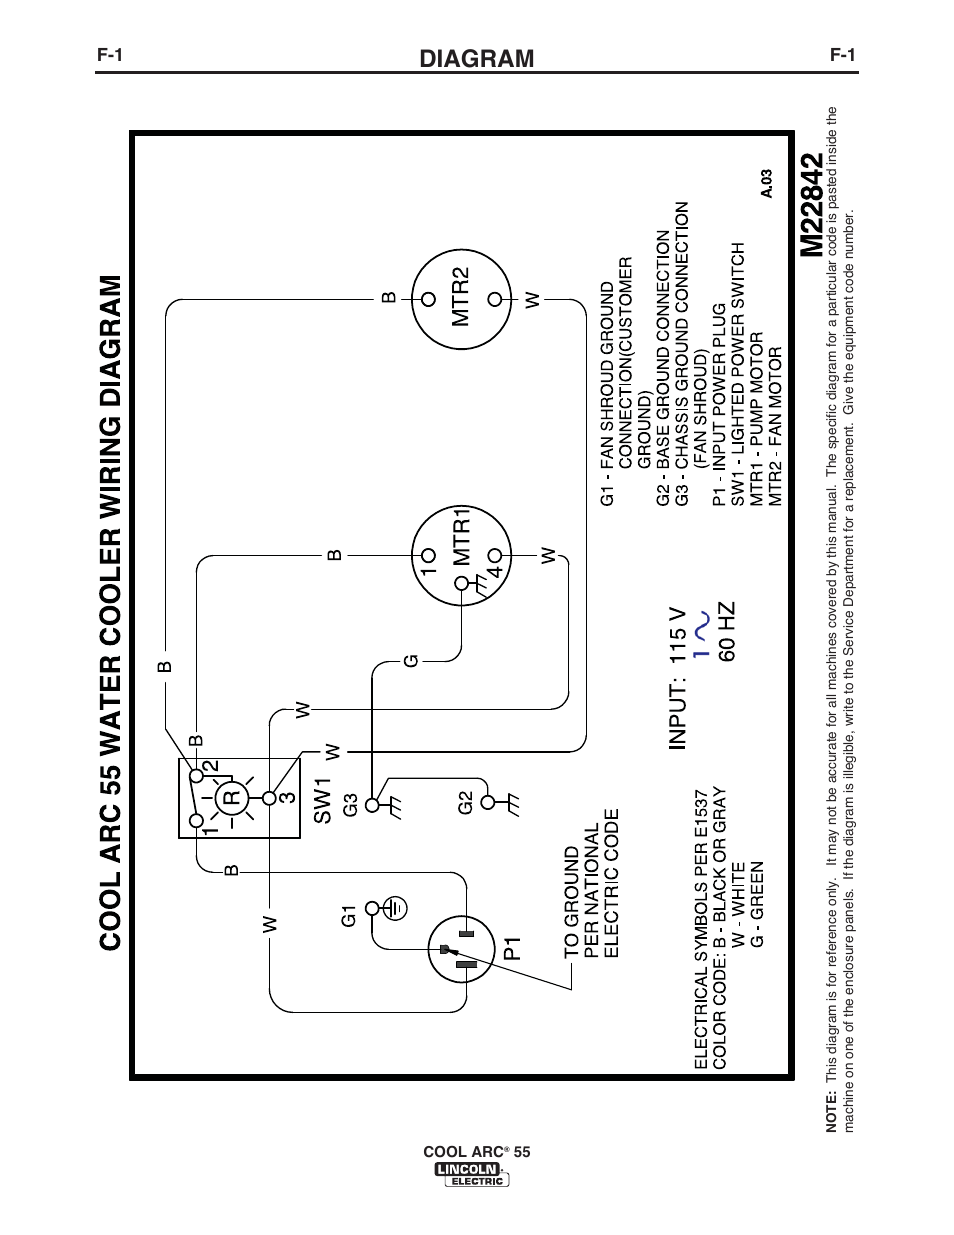 Water Cooler Wiring Diagram Electrical Diagrams Walk In Lincoln Electric Im10117 Cool Arc 55 User